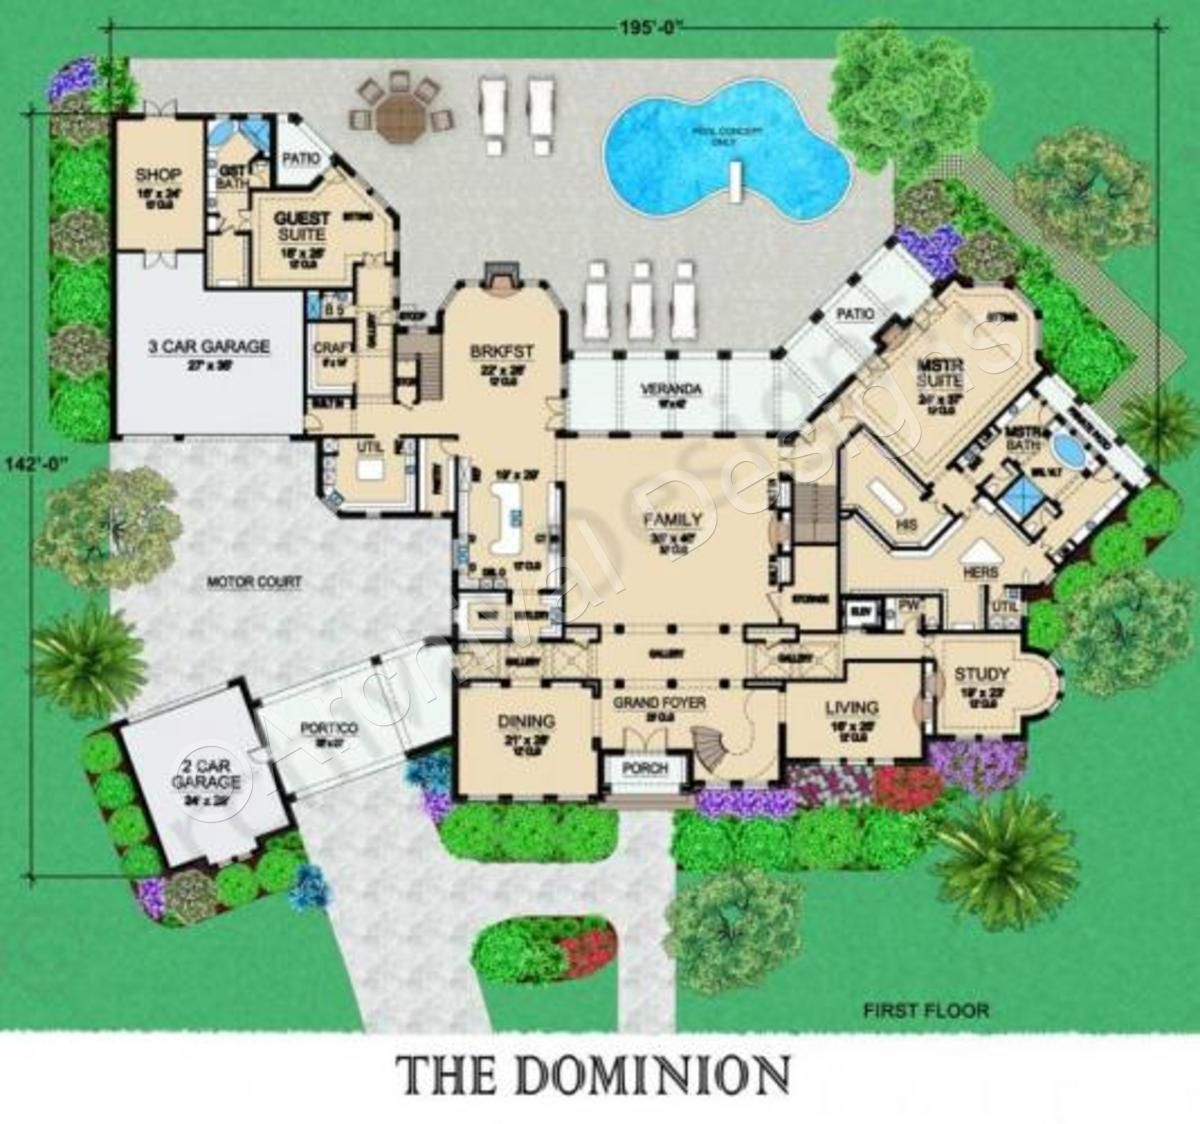 Pin By Makayla Laday On Floorplans Mansion Floor Plan Mansion Plans House Plans